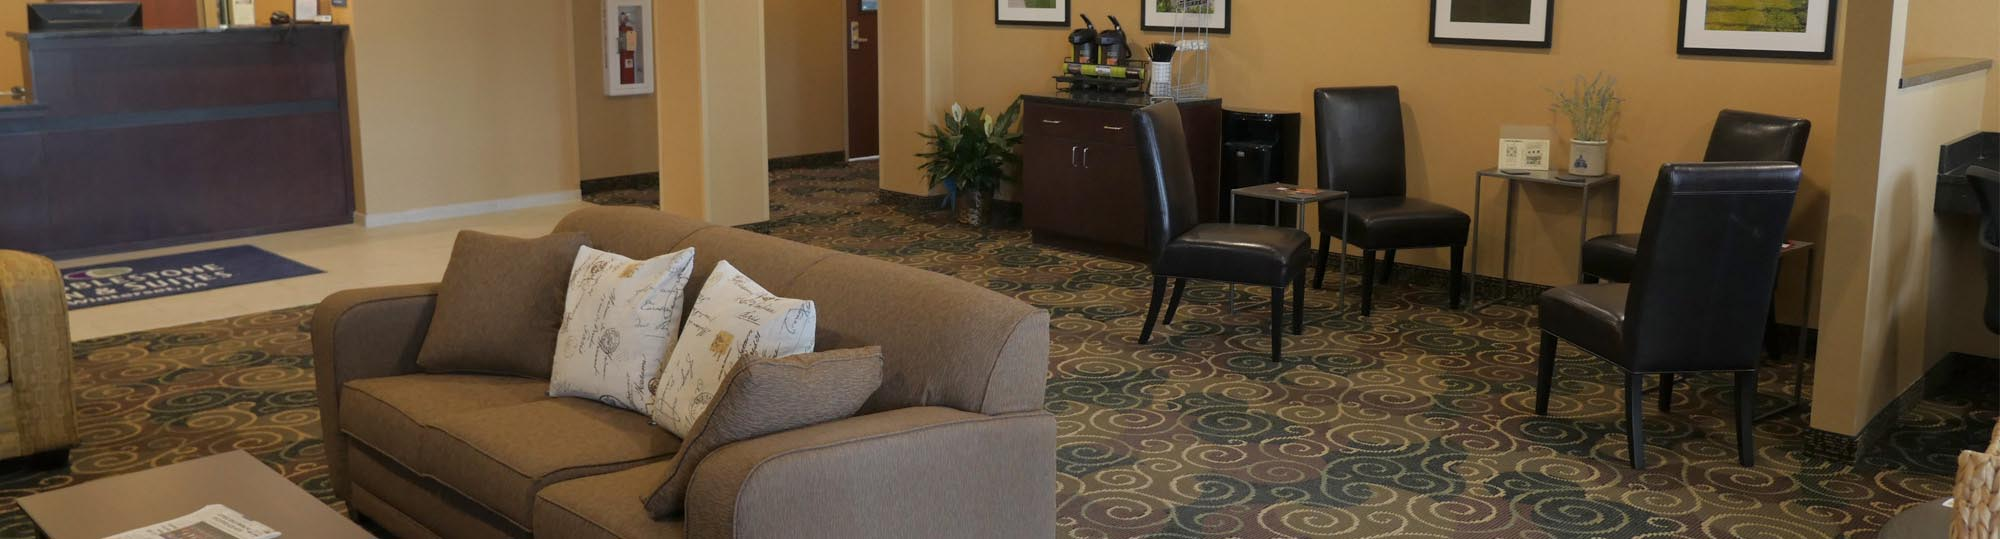 Cobblestone Inn and Suites Winterset